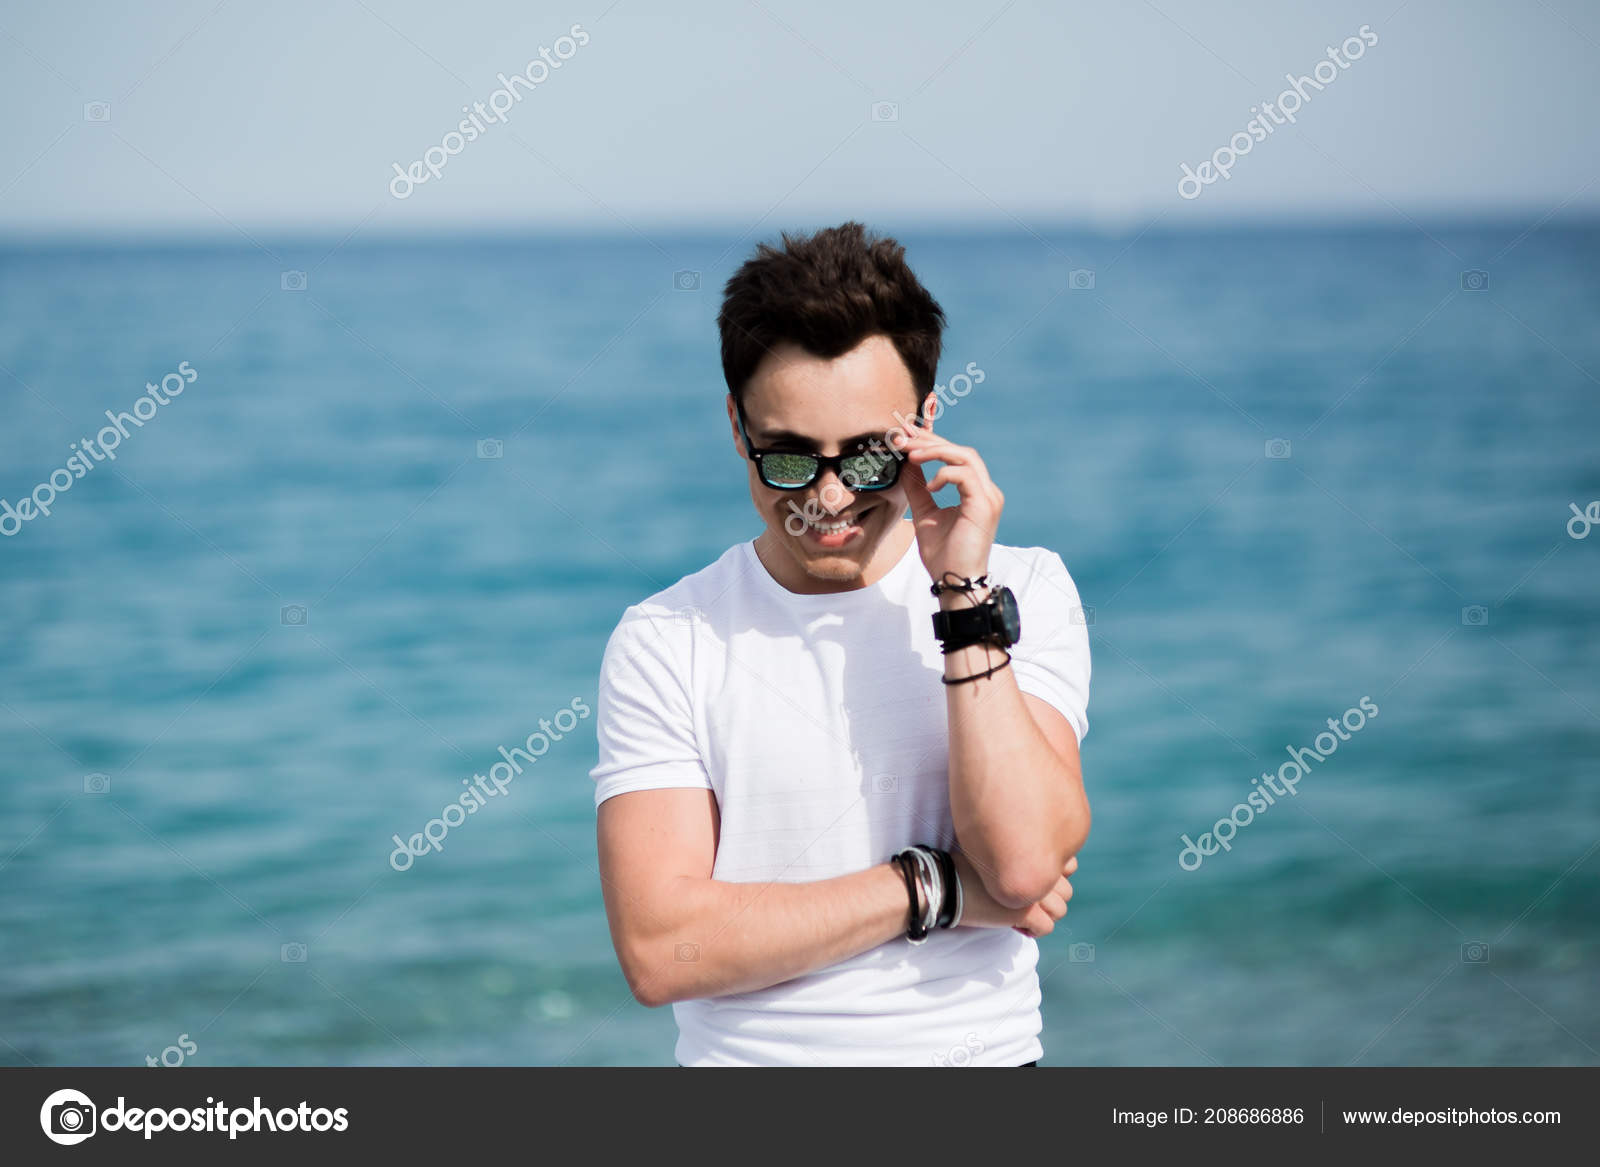 38db4f8a6bec Portrait of young handsome man in sunglasses smiling on the beach ...